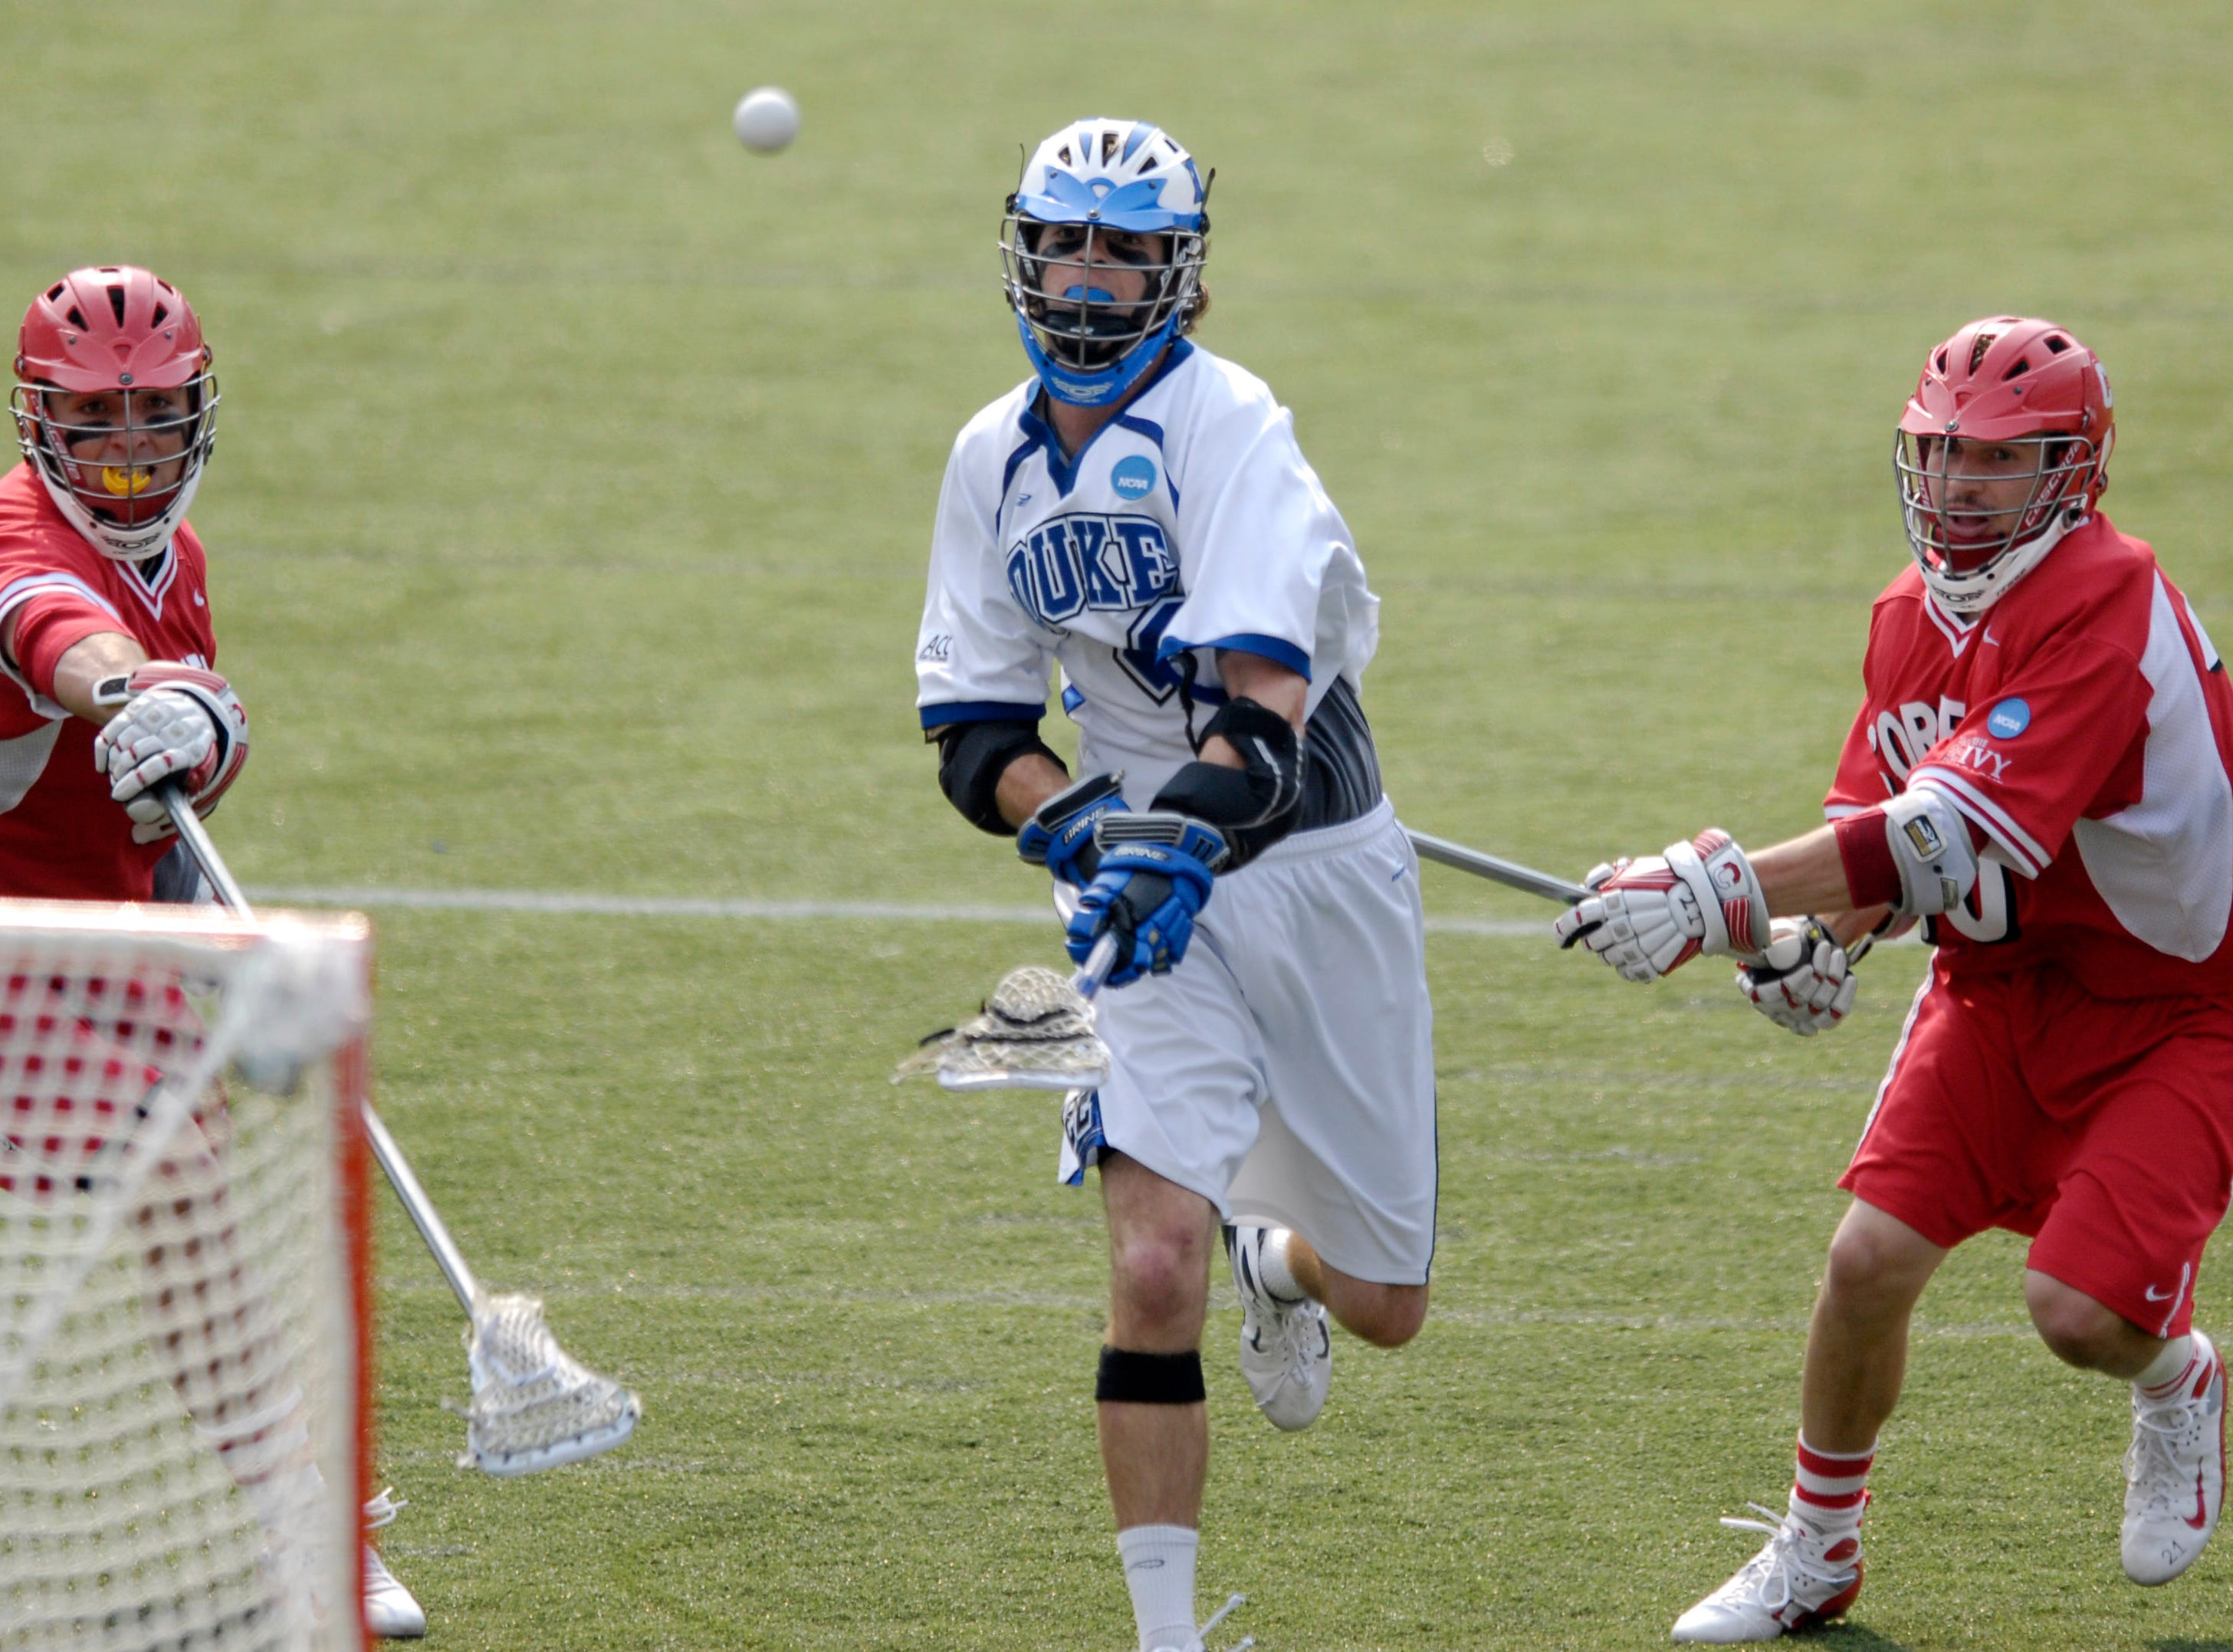 Duke's Ned Crotty, center, shoots and scores a goal between Cornell's Nick Gradinger, left, and George Calvert, right, during a division one NCAA lacrosse semifinal game, Saturday, May 26, 2007, in Baltimore. Duke won, 12-11.